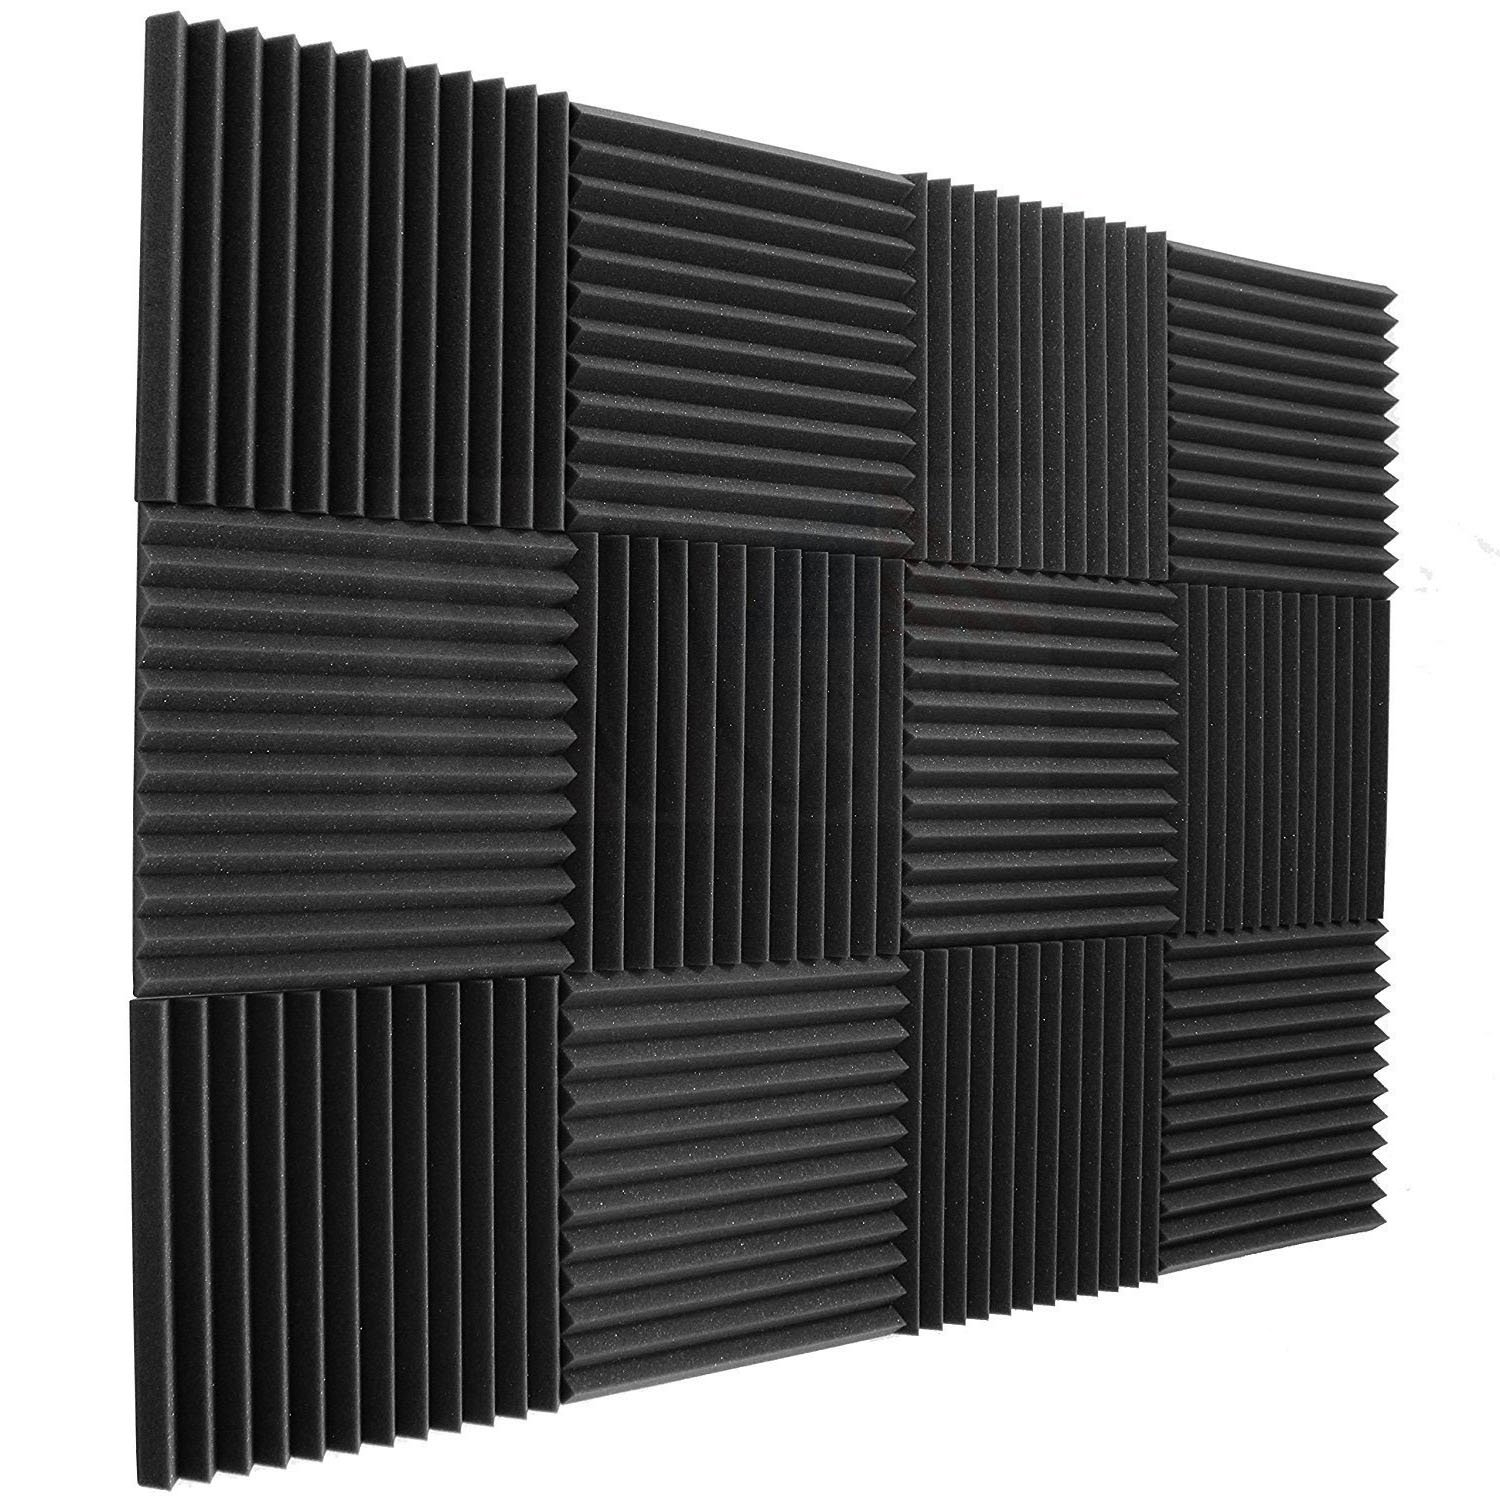 12 pack Acoustic Panels - Acoustic Foam Panels - Sound Proof Studio foam Sound Dampening noise Sound Deadening foam Sound Panels wedges Soundproof Sound Insulation Absorbing 1